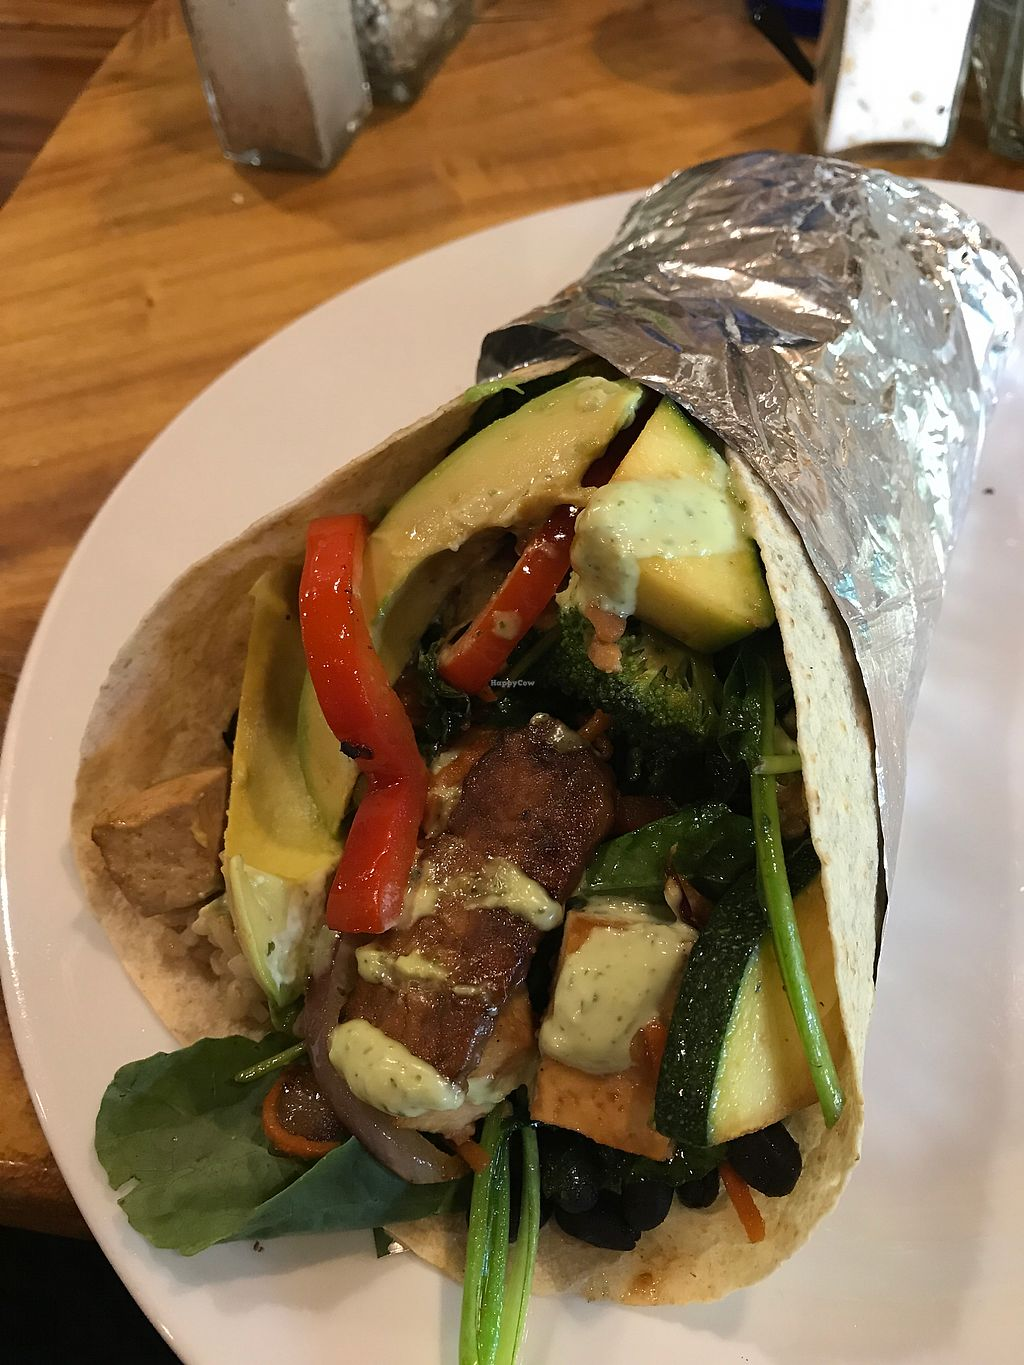 """Photo of The Beet Box Cafe  by <a href=""""/members/profile/Kimbala"""">Kimbala</a> <br/>Vegan Breakfast Burrito <br/> August 28, 2017  - <a href='/contact/abuse/image/1925/298185'>Report</a>"""